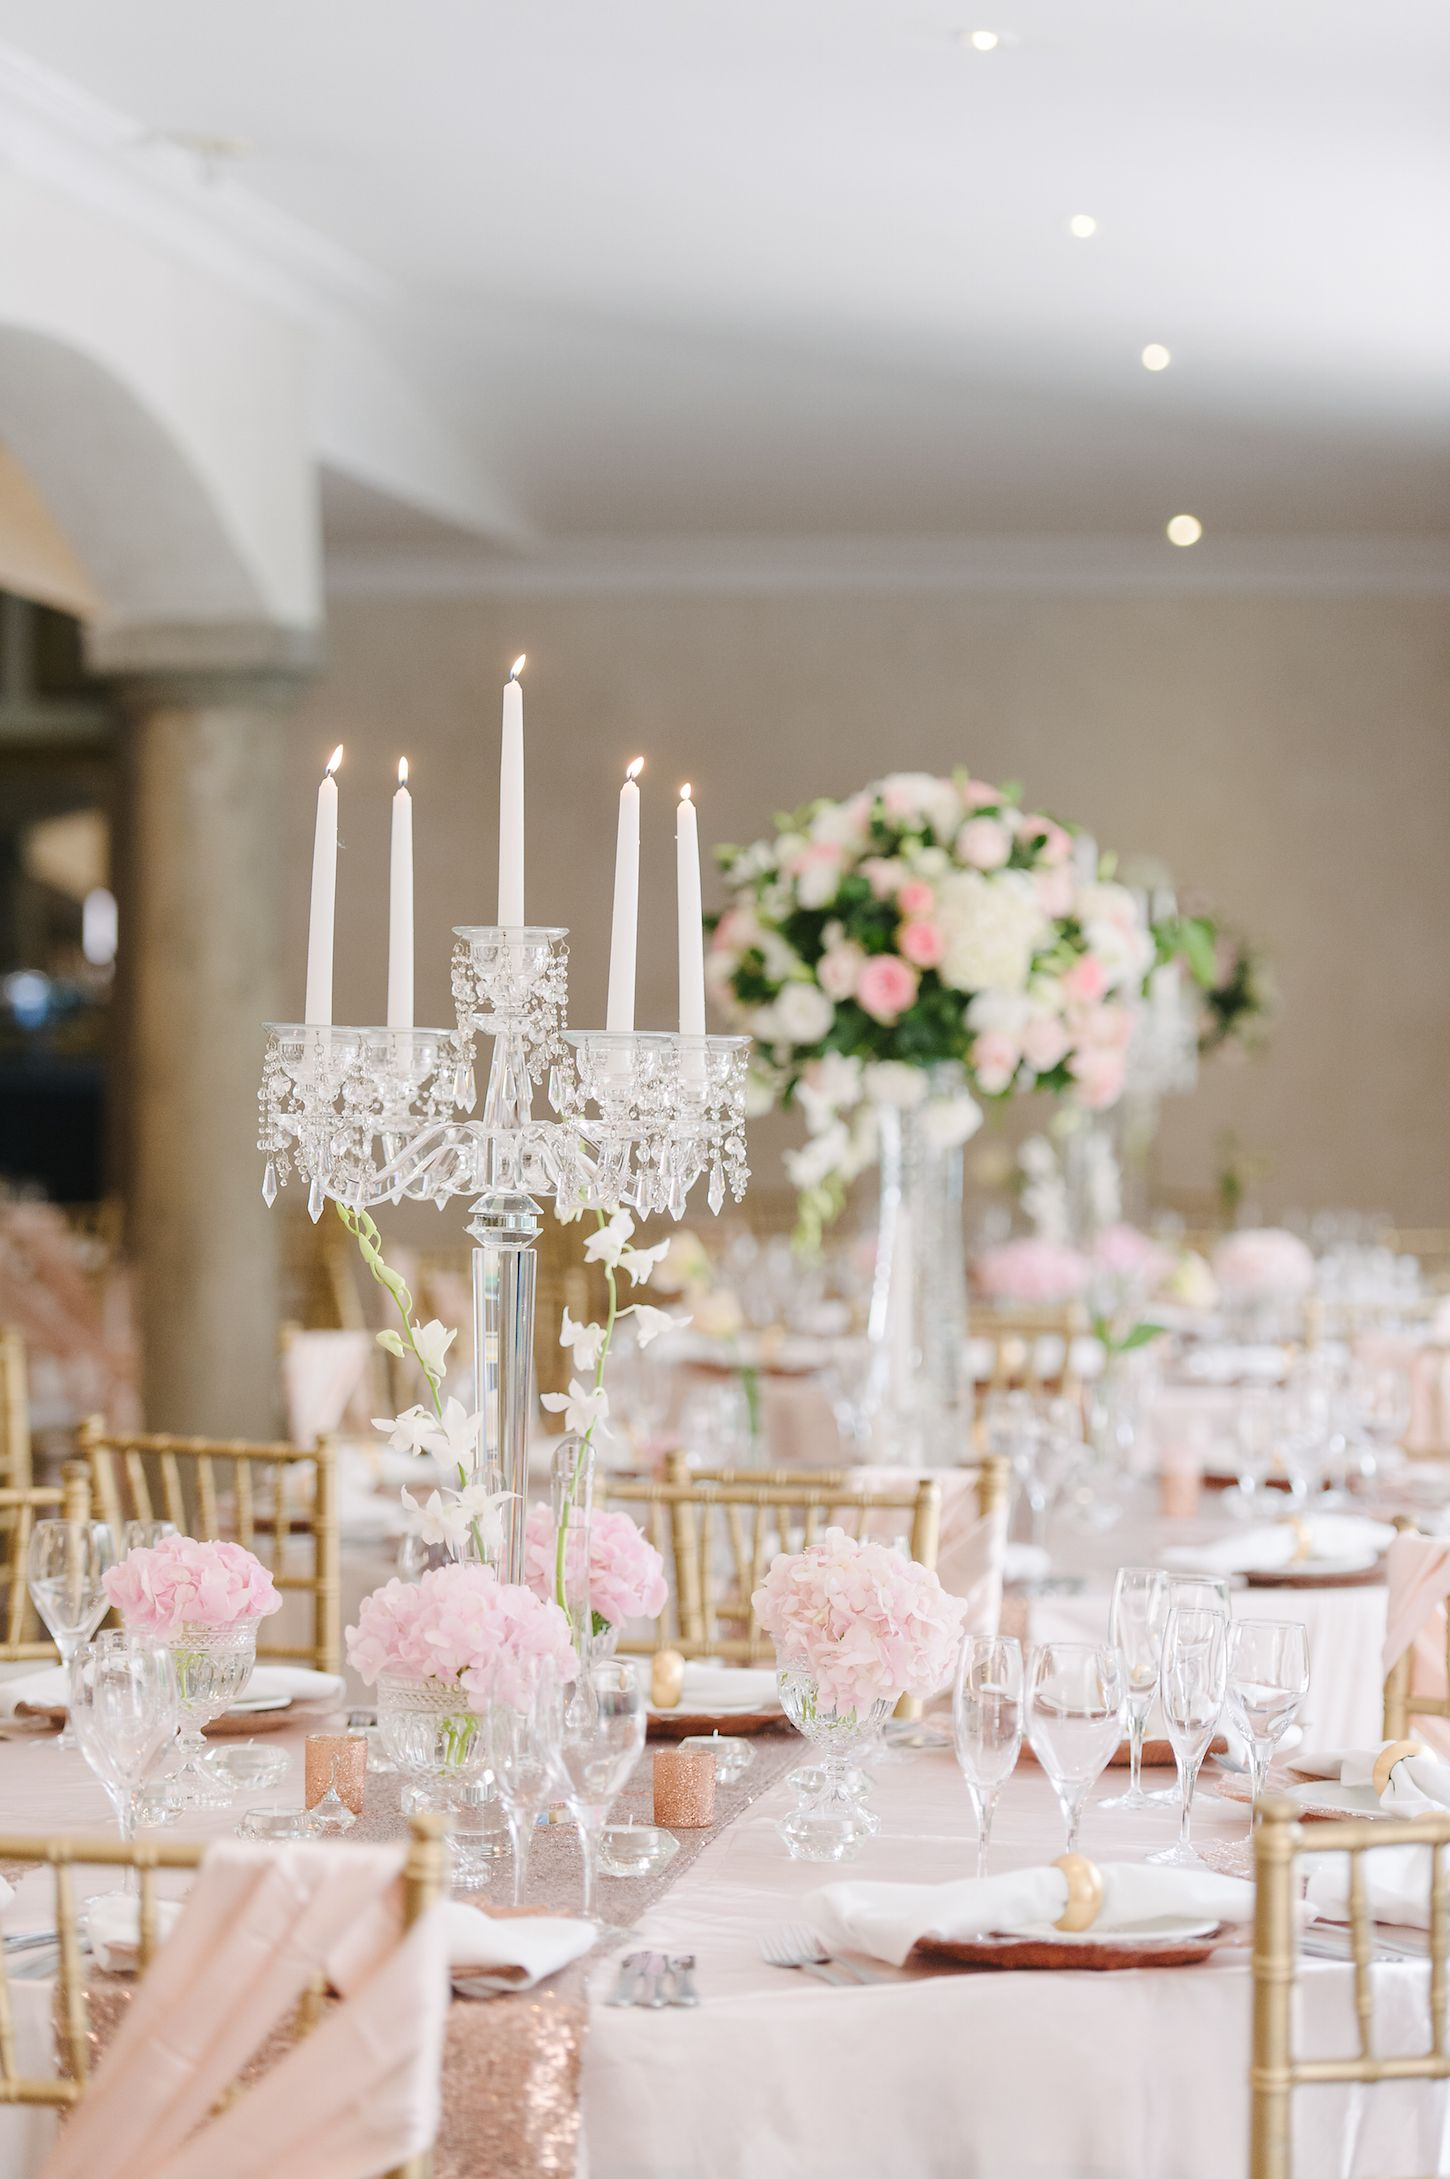 romantic and lush white and blush pink flower centerpieces using rh pinterest com Centerpieces Blush Pink Flower On Navy Linen Centerpiece Hydrangea Peoli Rose Blush Pink Flowers